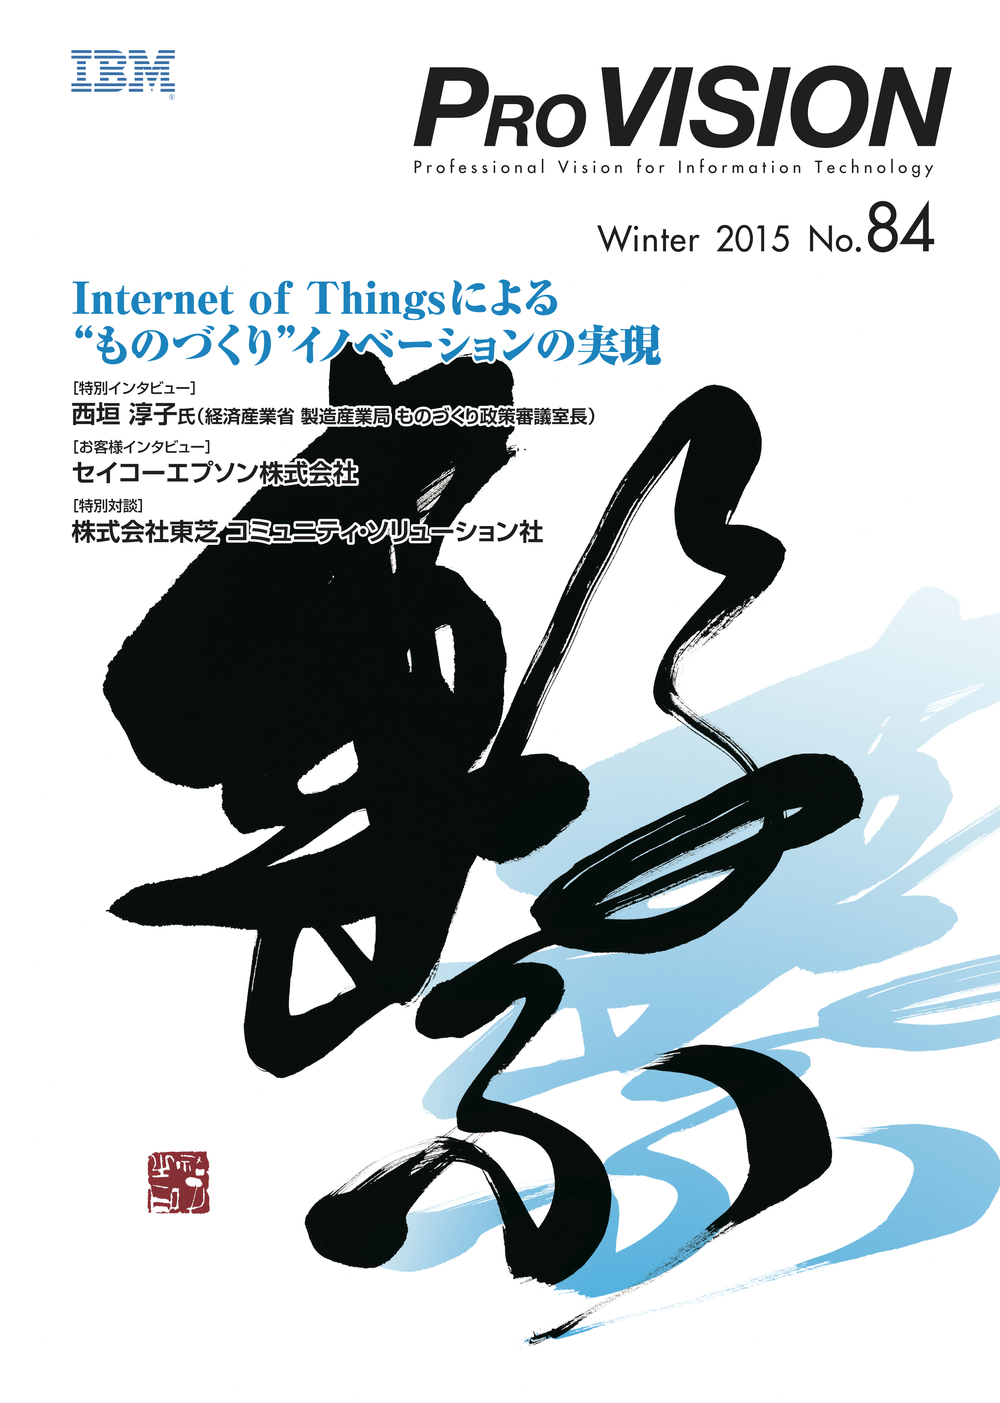 IBM_PROVISION_no.84_Winter2015